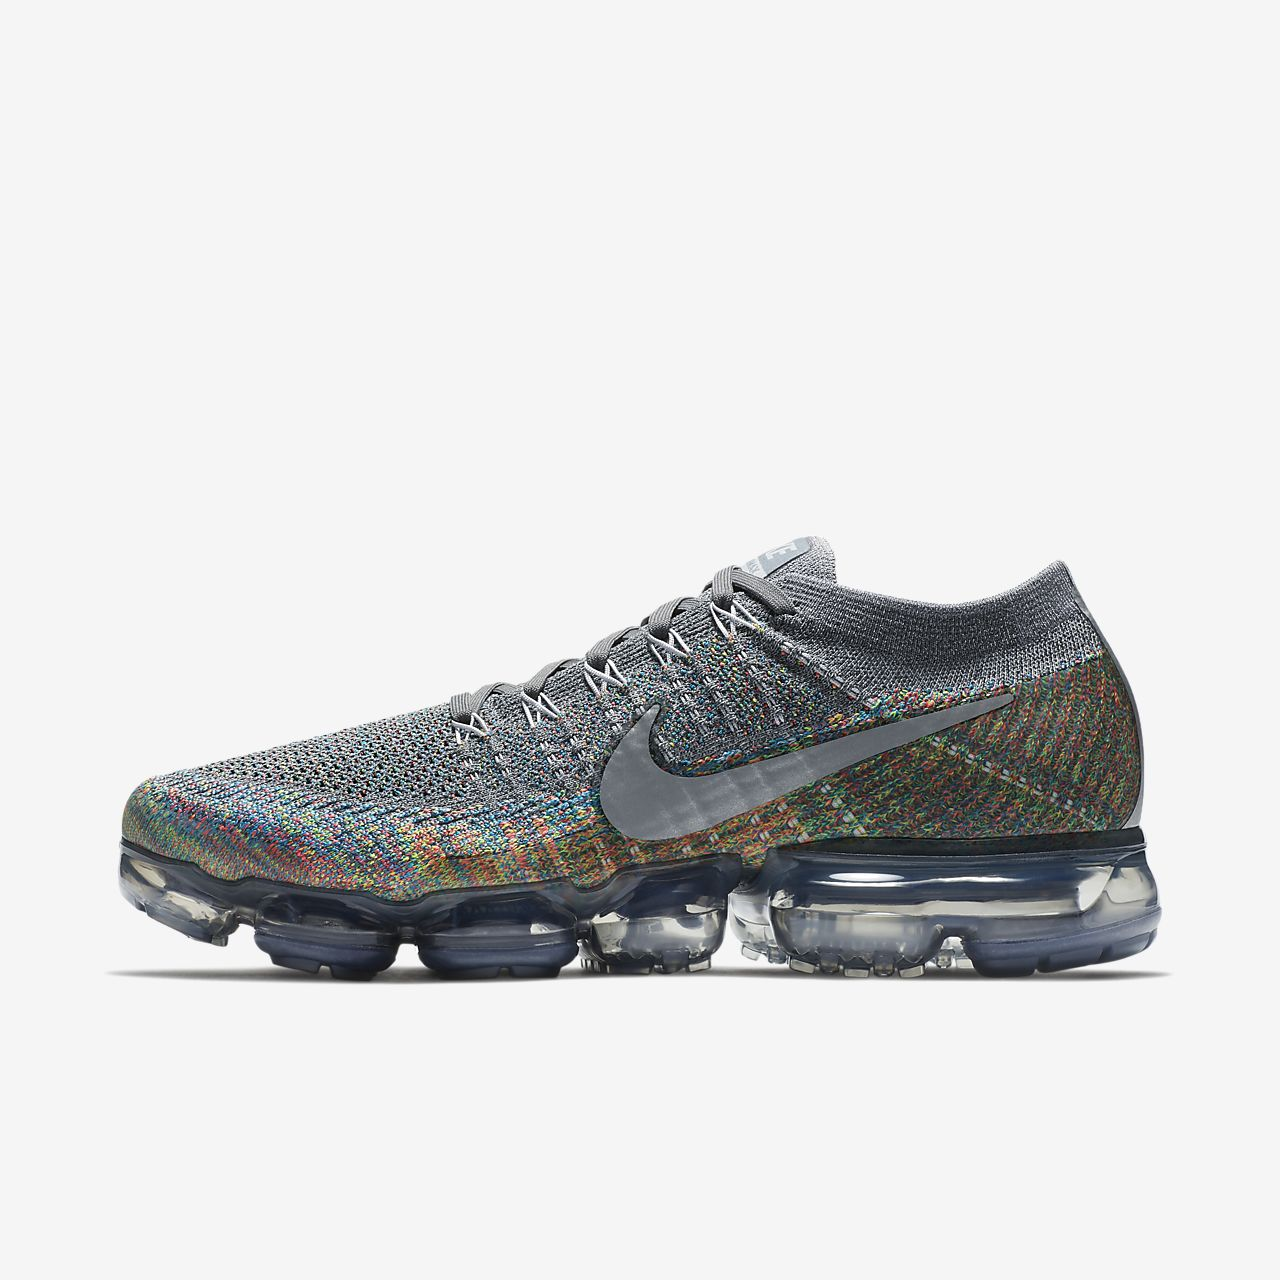 0c14502336ed2 Nike Air VaporMax Flyknit Men s Shoe. Nike.com GB